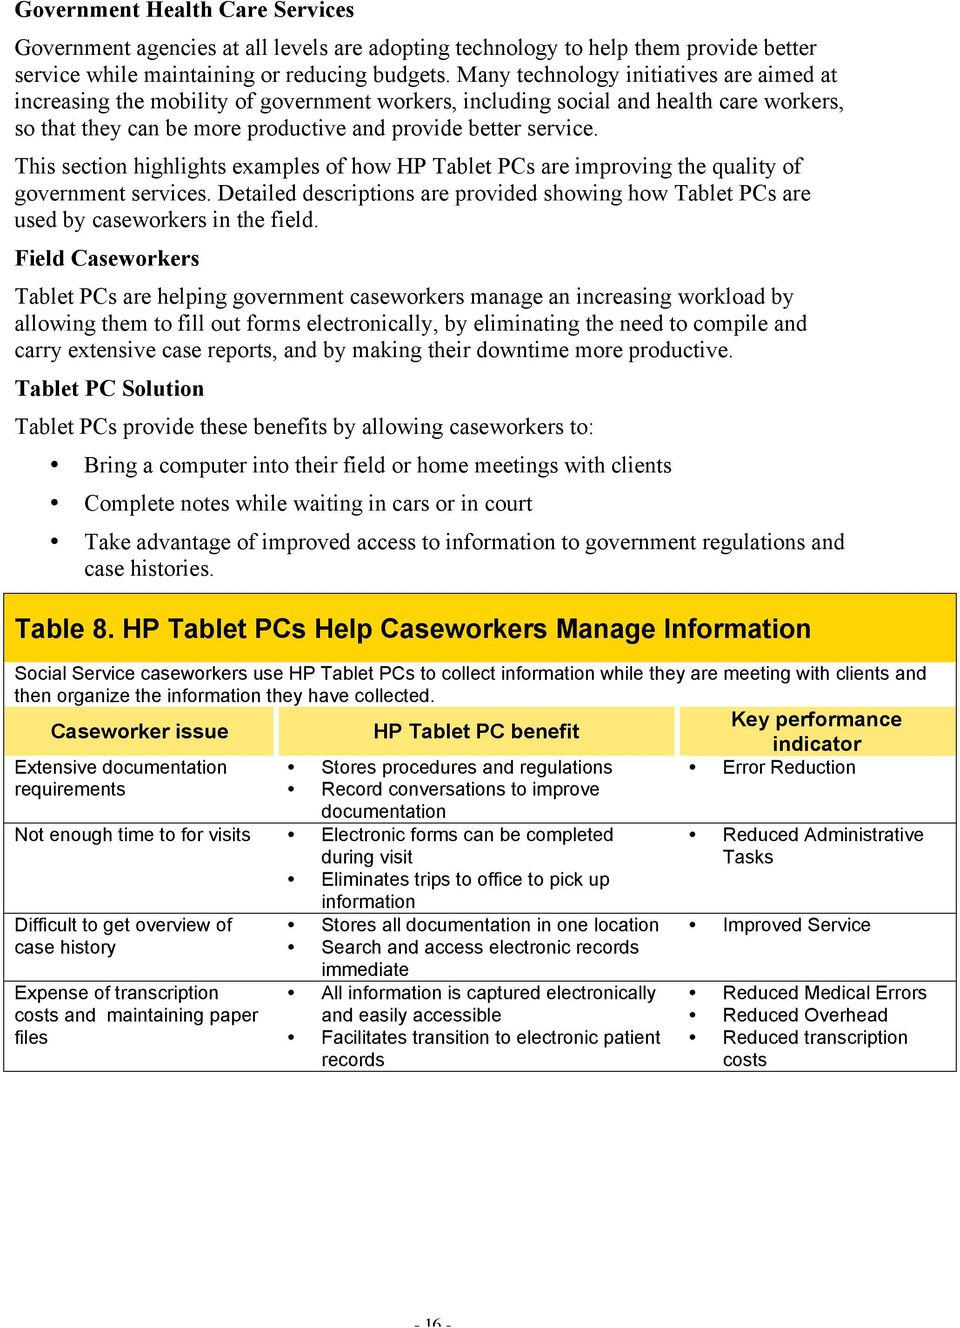 This section highlights examples of how HP Tablet PCs are improving the quality of government services. Detailed descriptions are provided showing how Tablet PCs are used by caseworkers in the field.